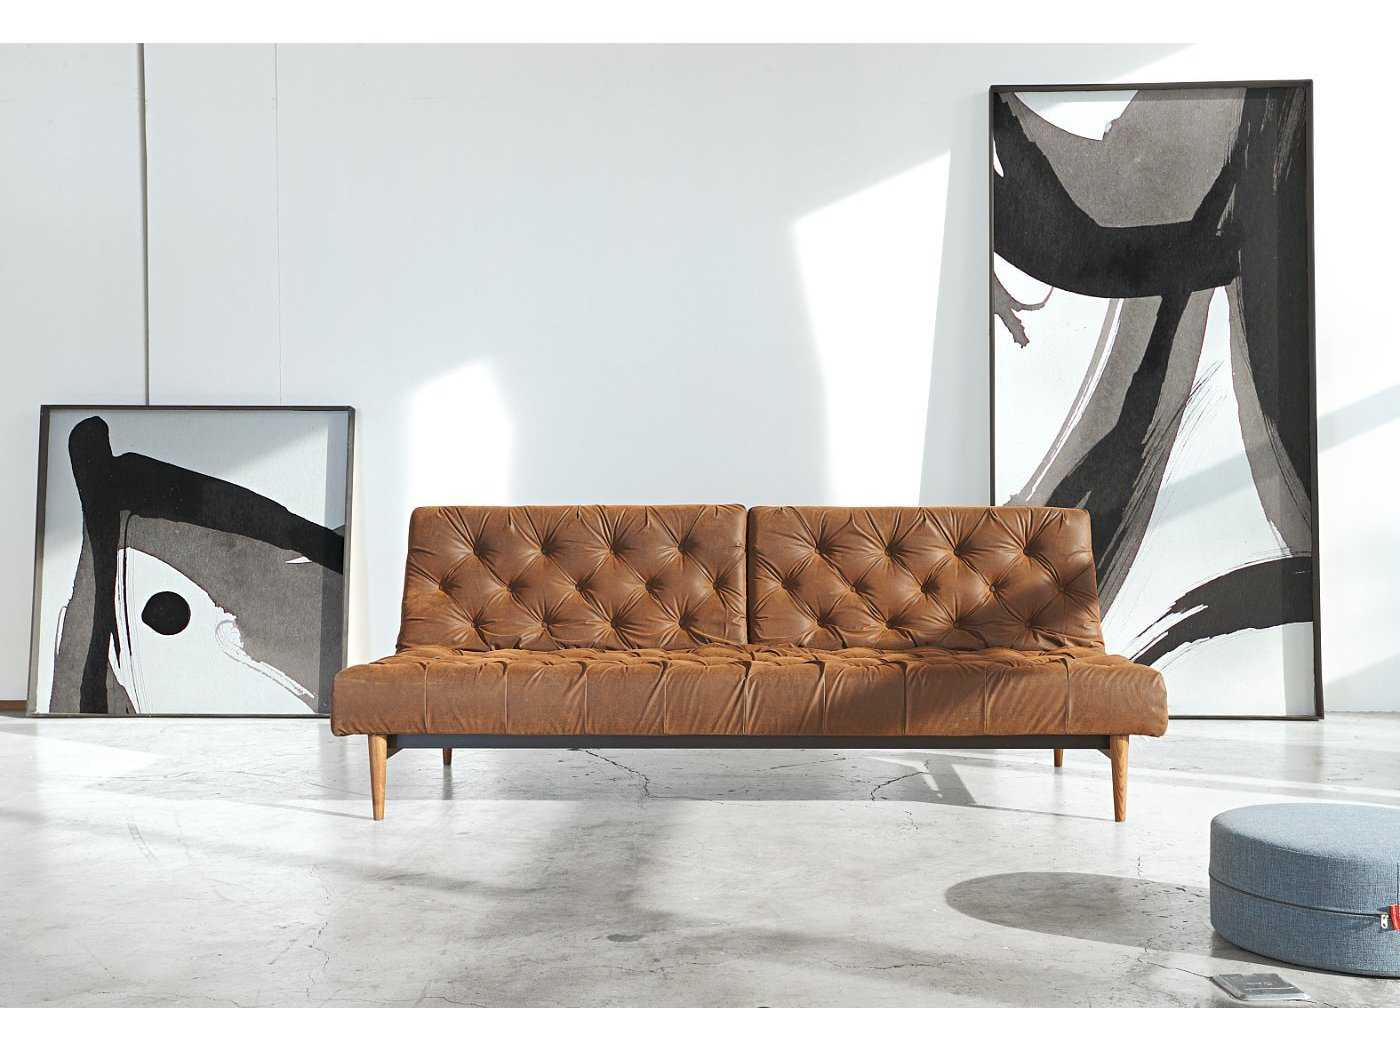 innovation oldschool chesterfield sofa bed with dark wood. Black Bedroom Furniture Sets. Home Design Ideas